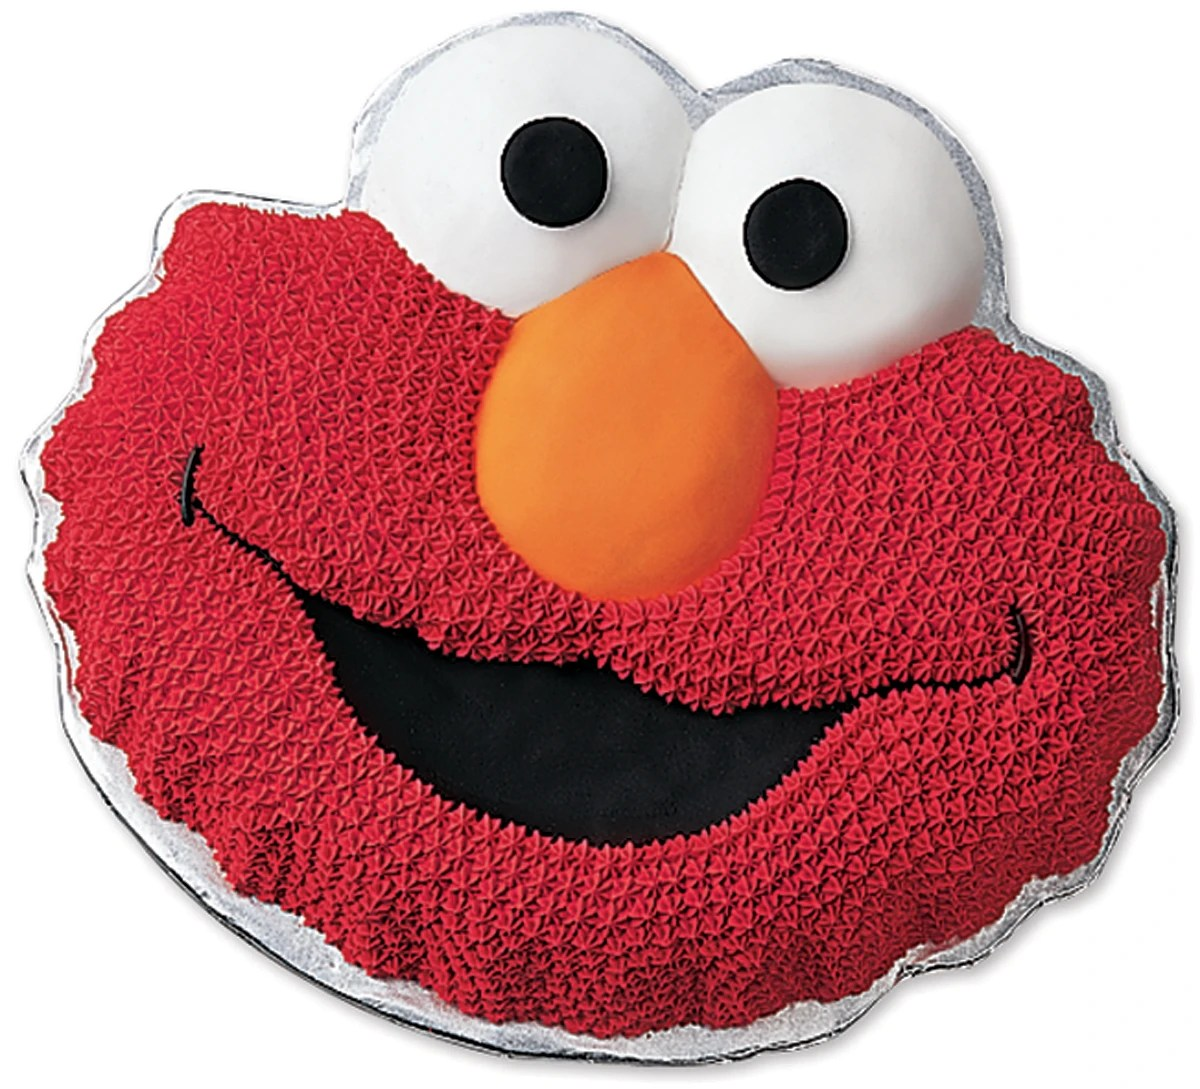 Wilton Novelty Cake Pan Elmo 13 5 X10 5 X2 Contains